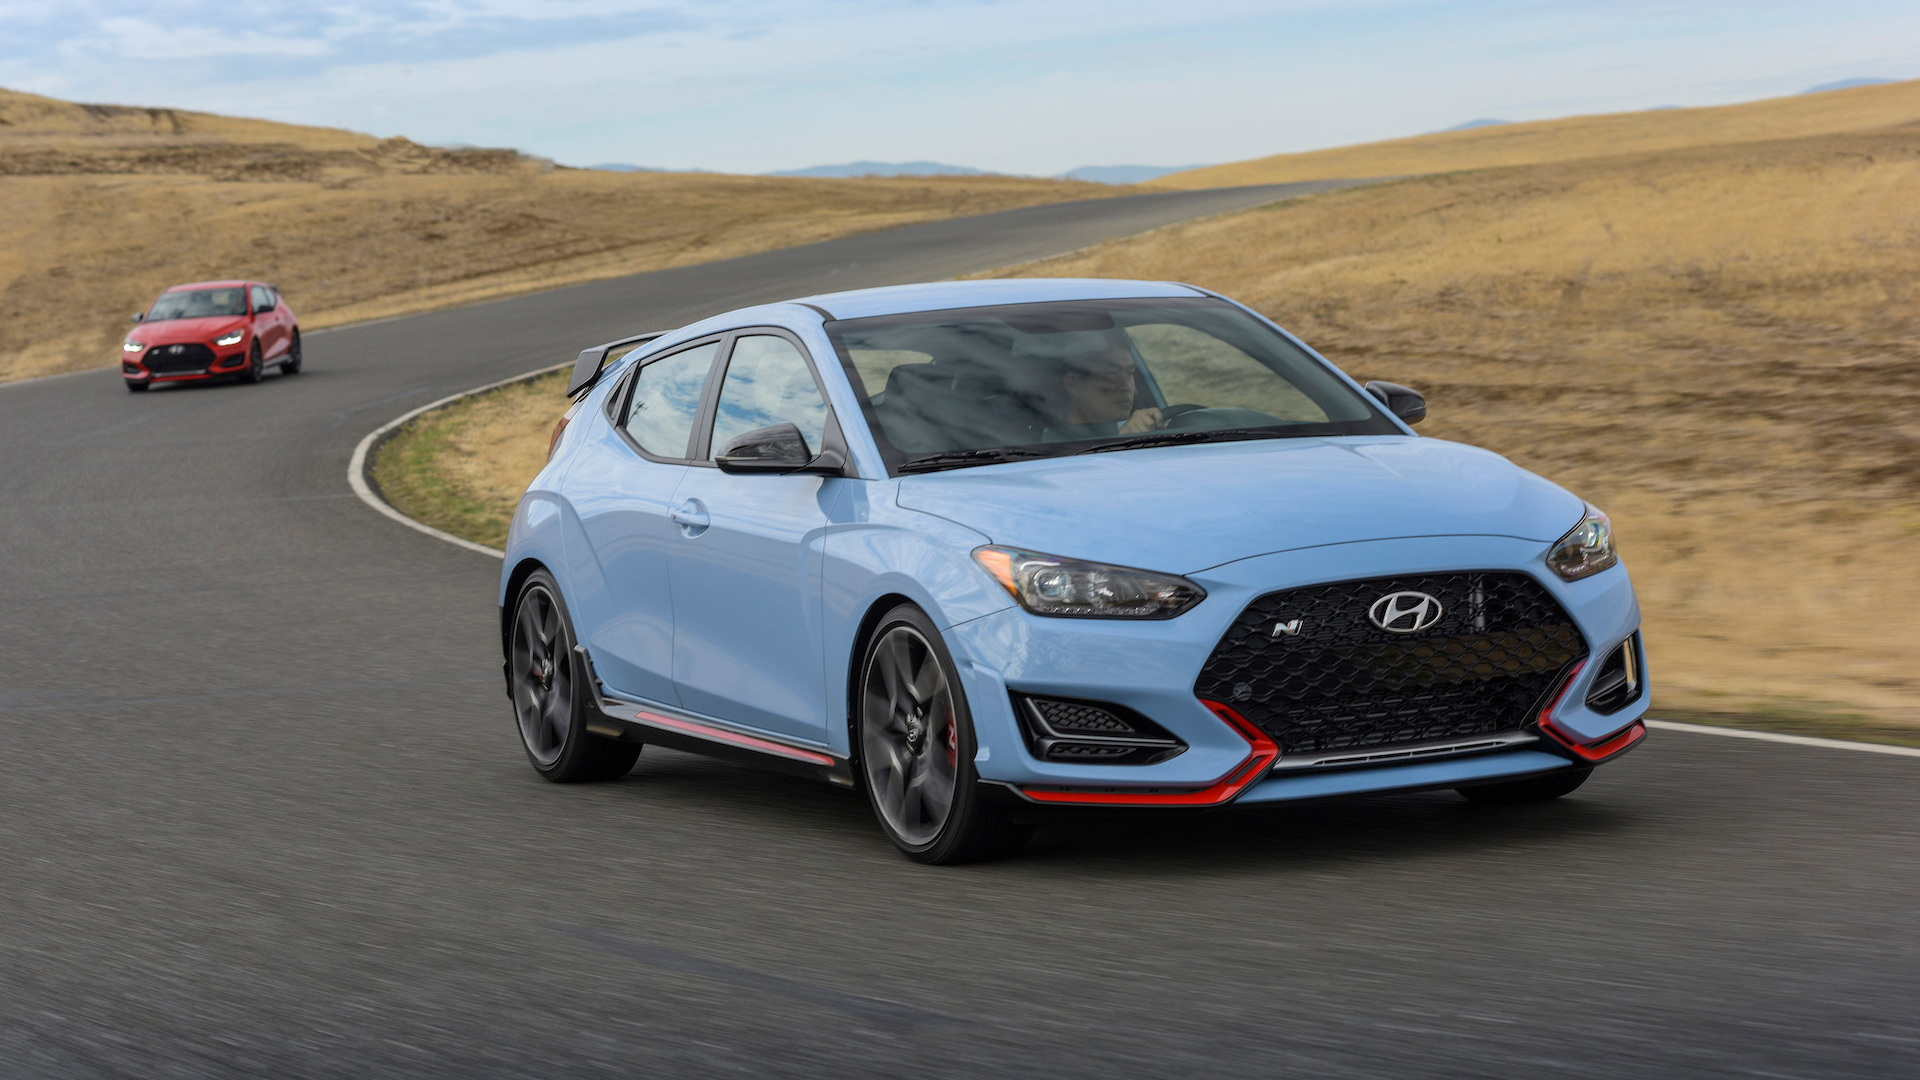 2019 Hyundai Veloster N first drive review: Hot hatch